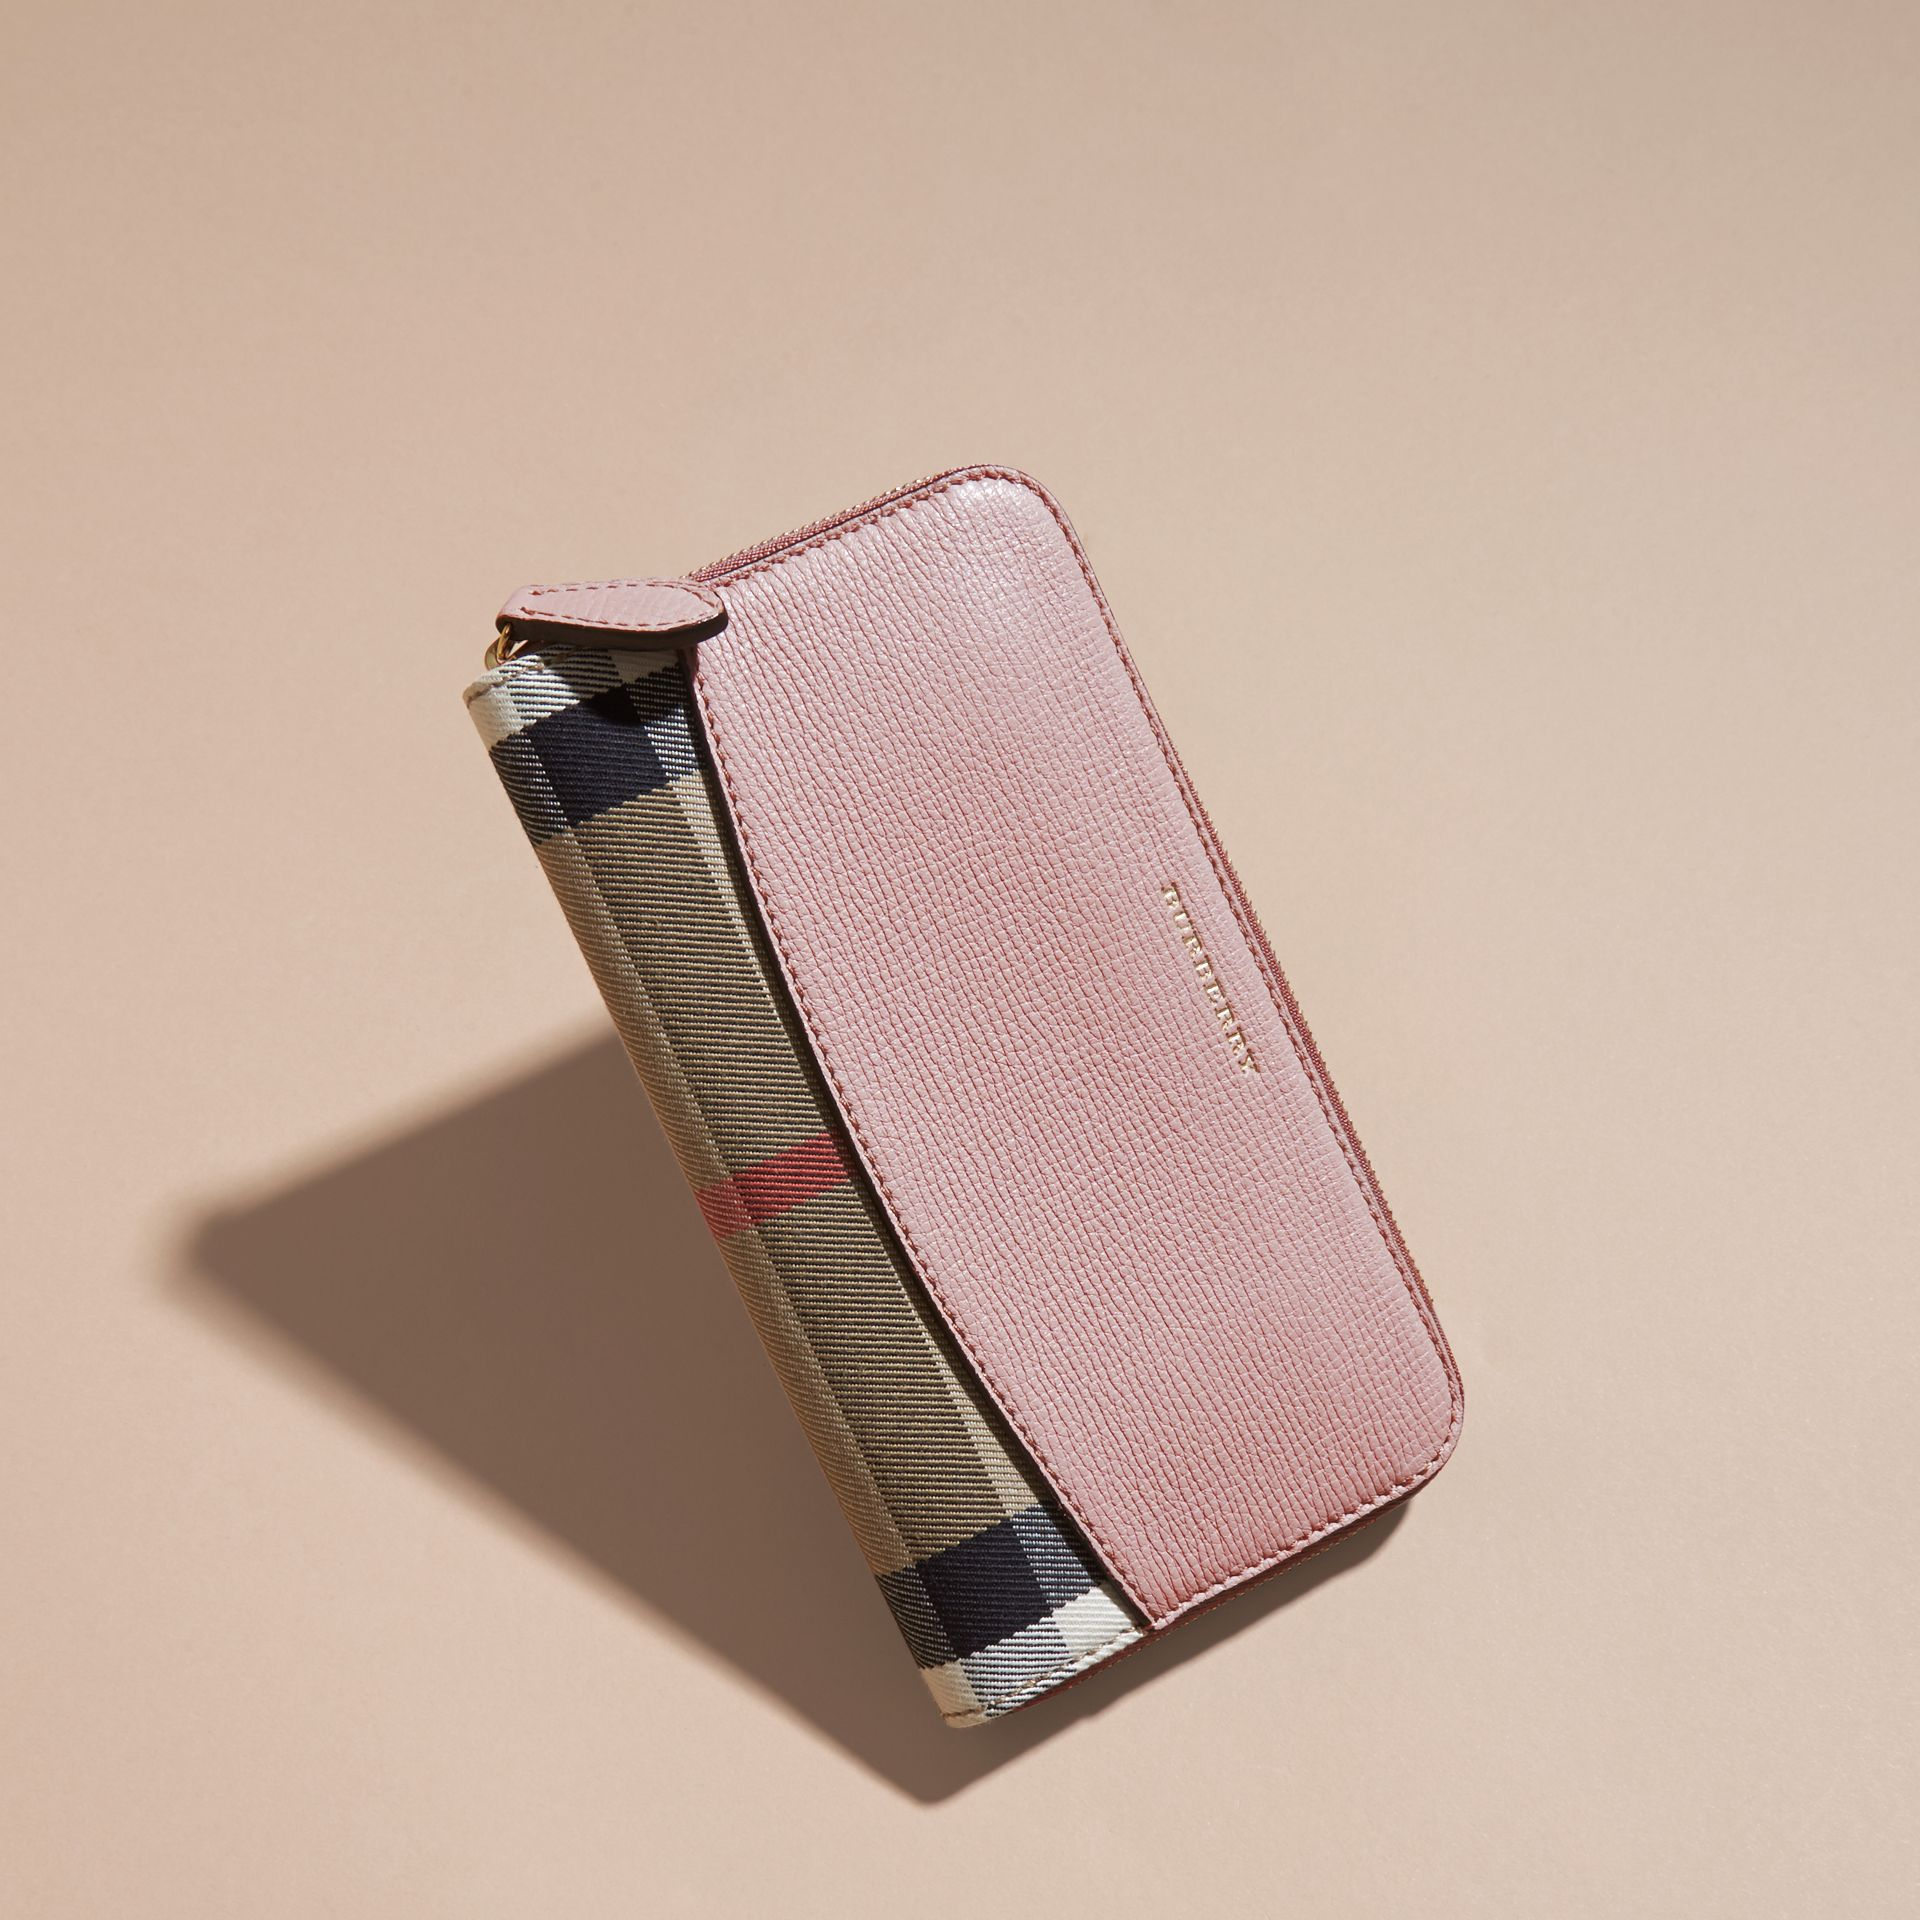 House Check and Leather Ziparound Wallet in Pale Orchid - Women | Burberry - gallery image 6